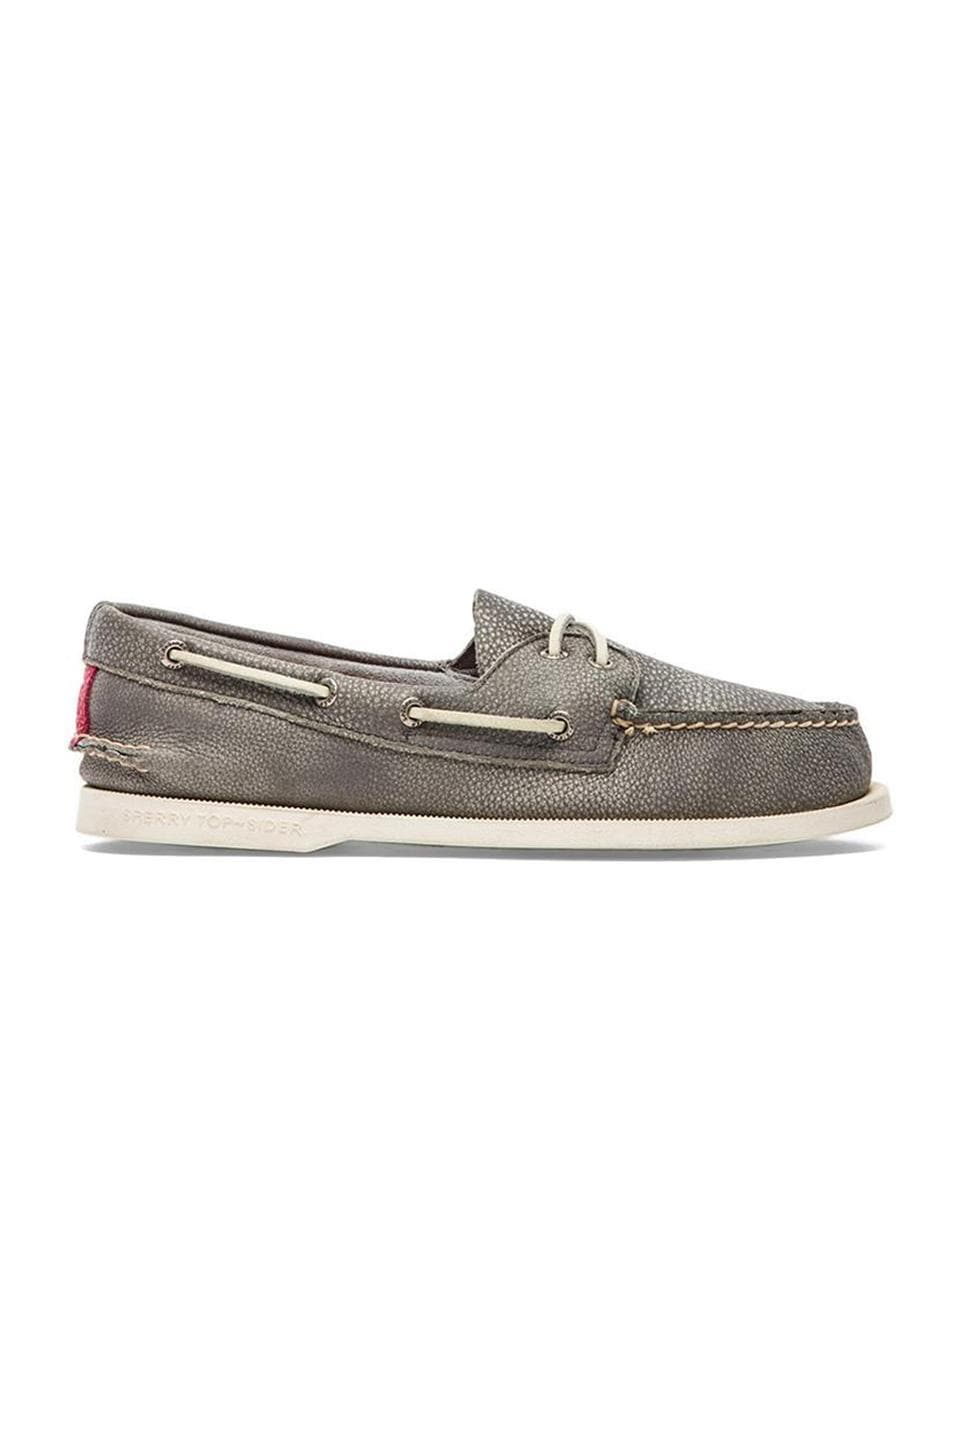 Sperry Top-Sider A/O 2-Eye Washed in Grey